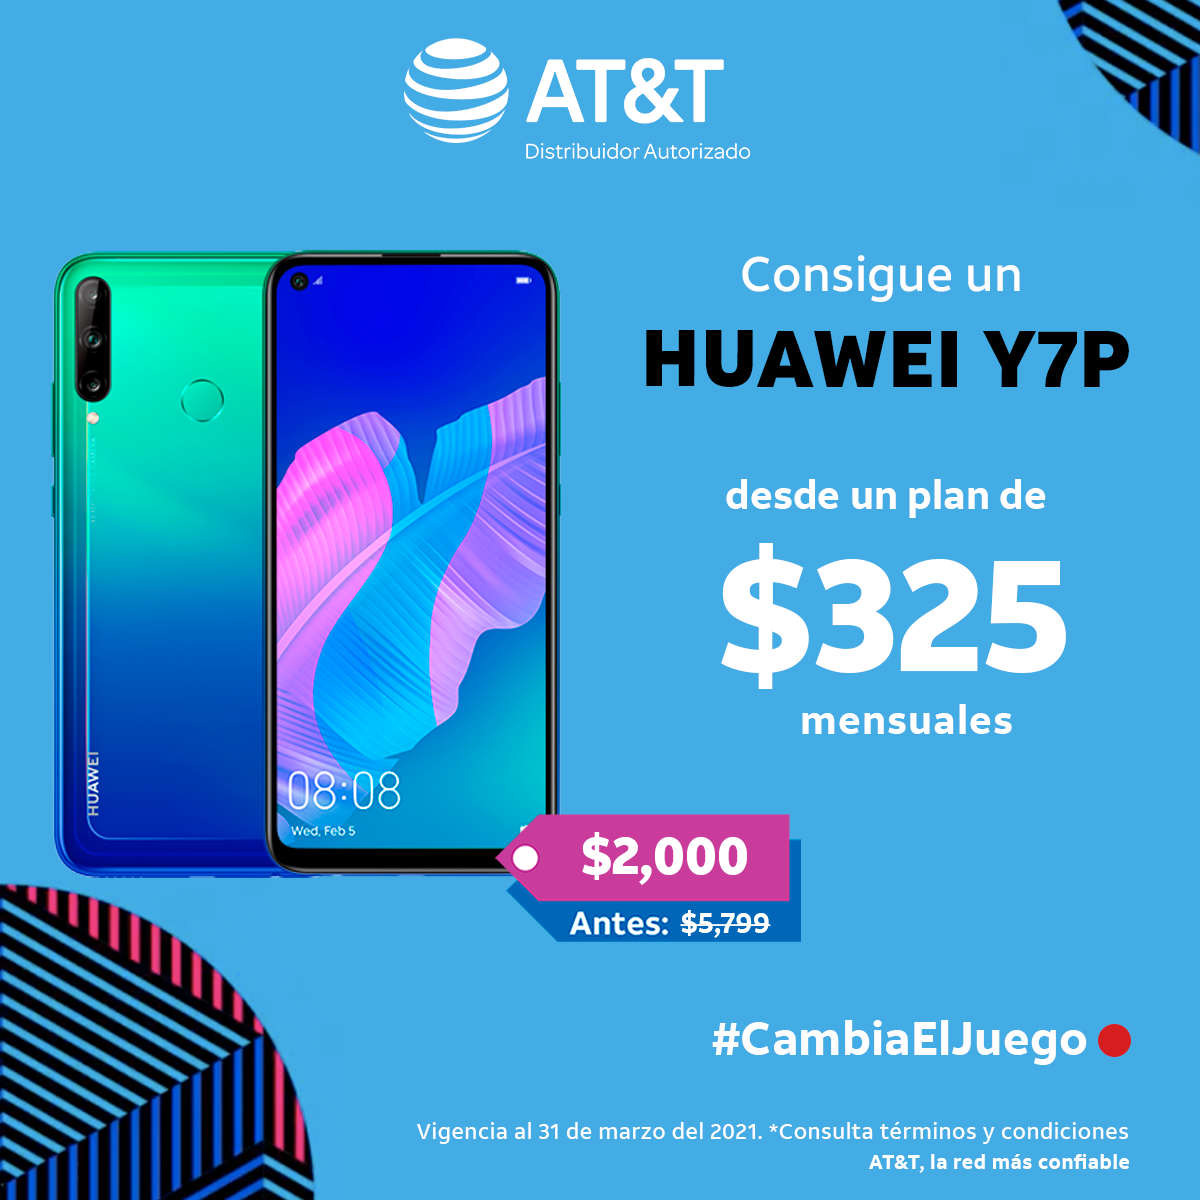 HUAWEI Y7P desde un plan de $325 con AT&